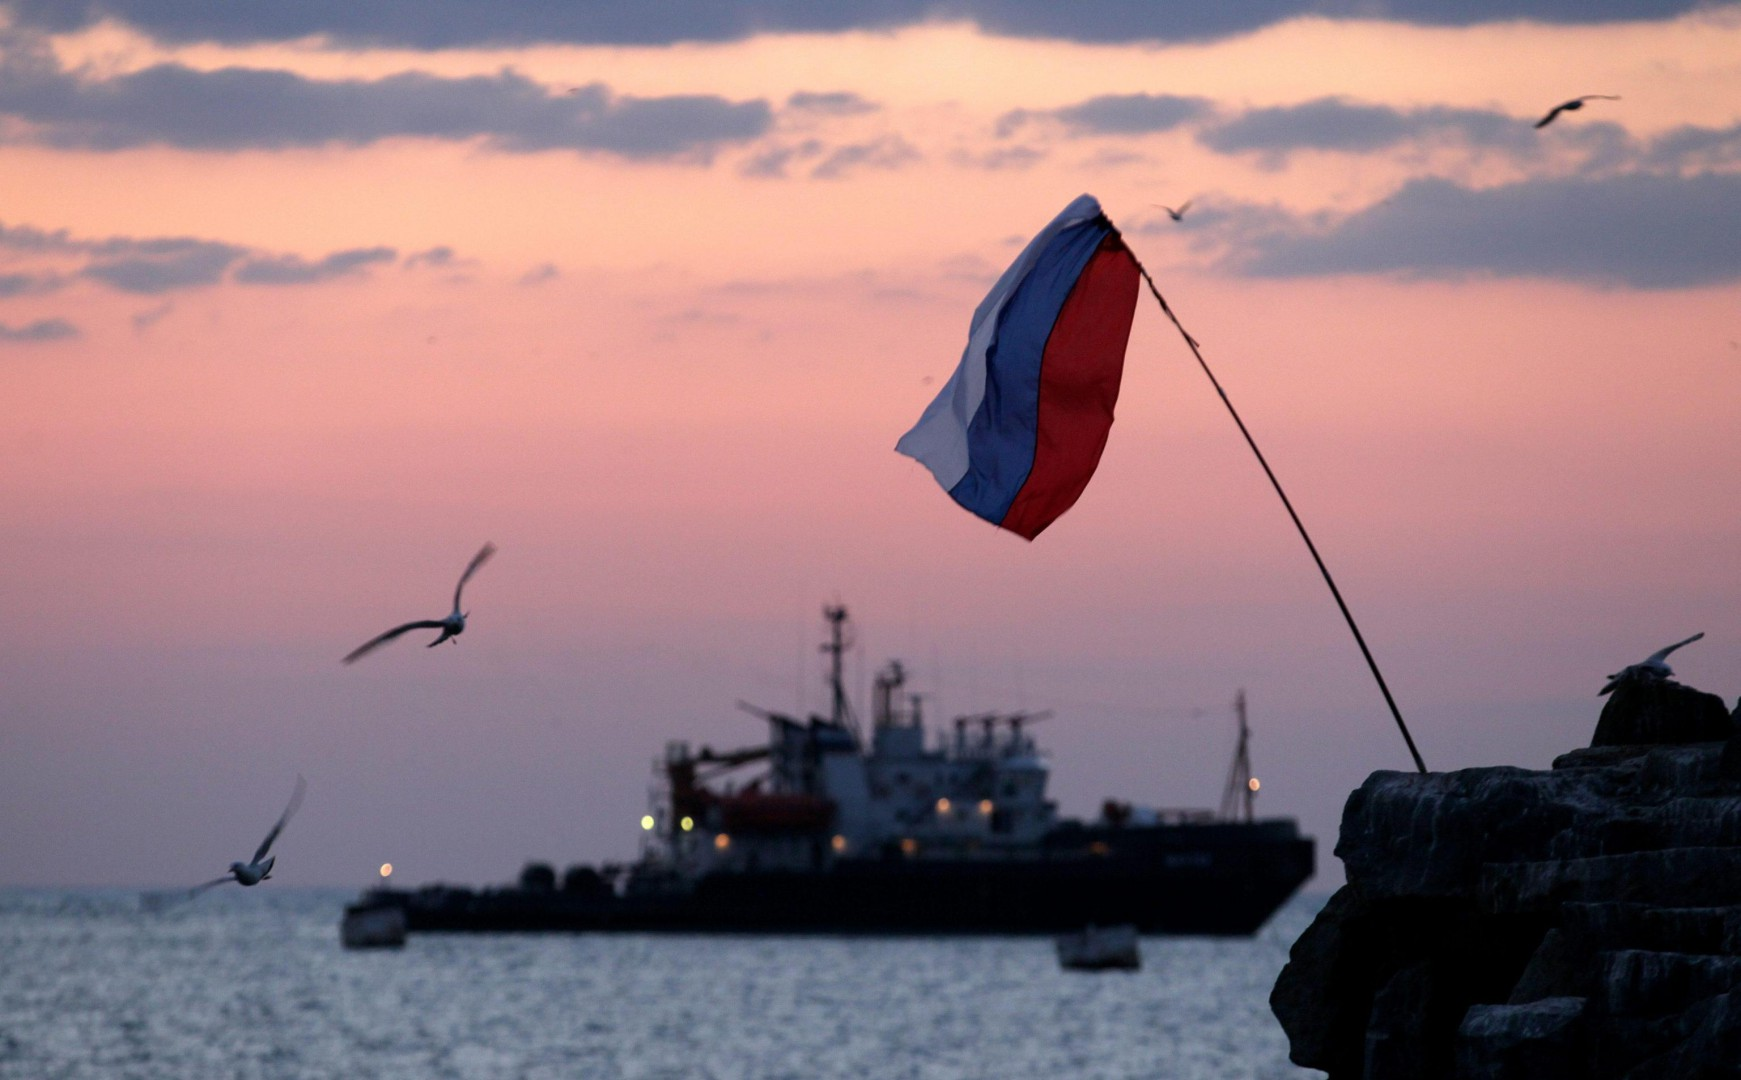 epa04122006 A Russian national flag waves in the bay of Seavastopol, Crimea, Ukraine, 12 March 2014. Crimea's secessionist authorities said on 12 March that they have partially closed the region's airspace to 'keep out provocateurs' in the run-up to the March 16 referendum about joining Russia.  EPA/ZURAB KURTSIKIDZE